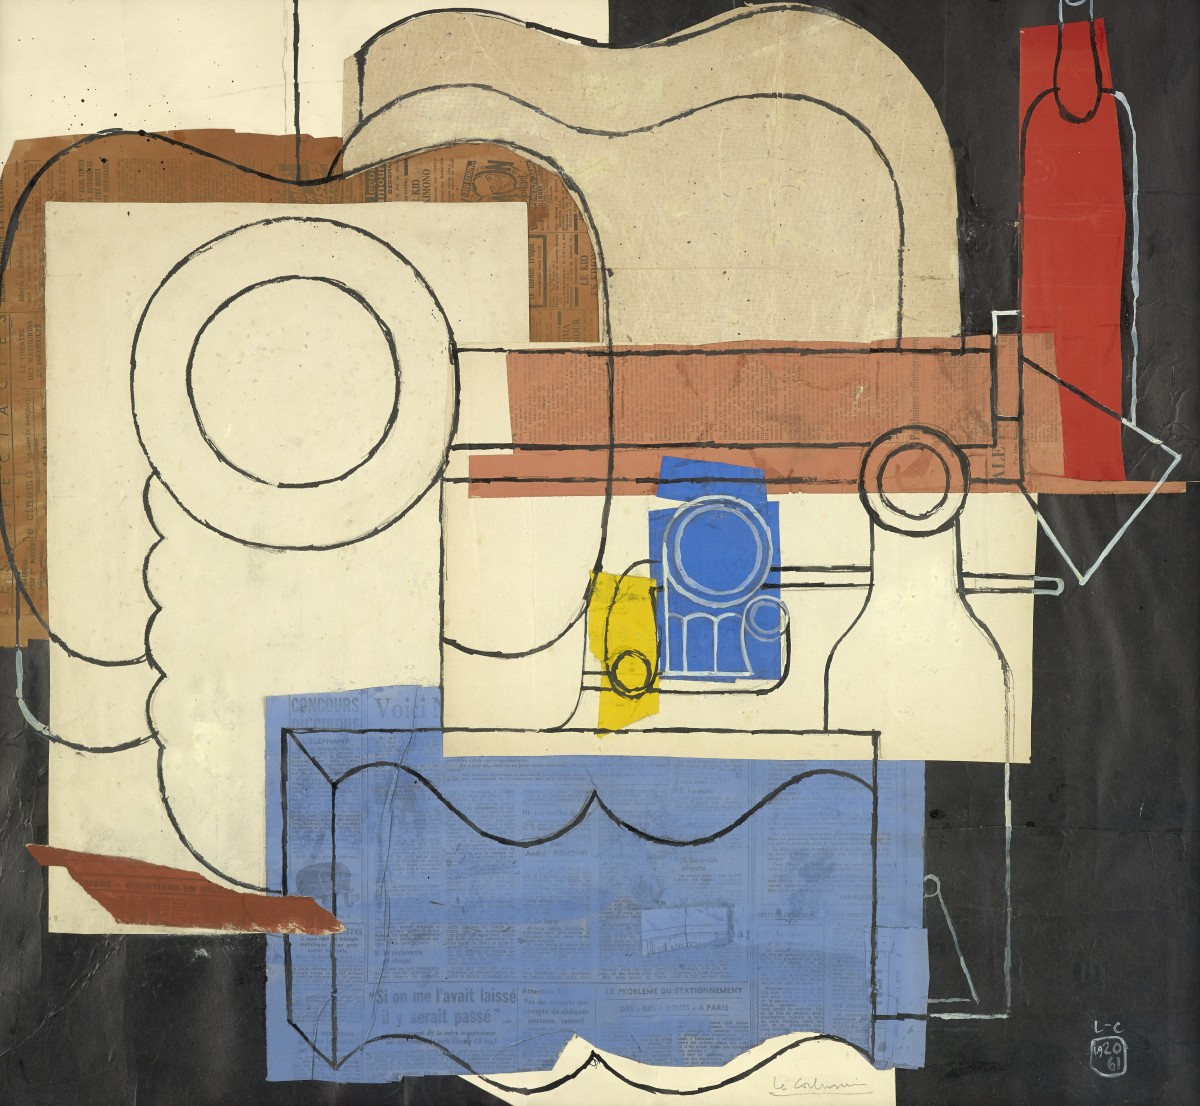 <p>Le Corbusier</p><p>(1887-1965)</p><p>Still life with guitar, pile of plates, an open book, pipes, bottles and glasses</p><p>1961</p><p>Collage, gouache and ink on paper</p><p>74 x 81 cm</p><p>Monogrammed and dated lower right: 'L-C / 1920 / 61'</p>